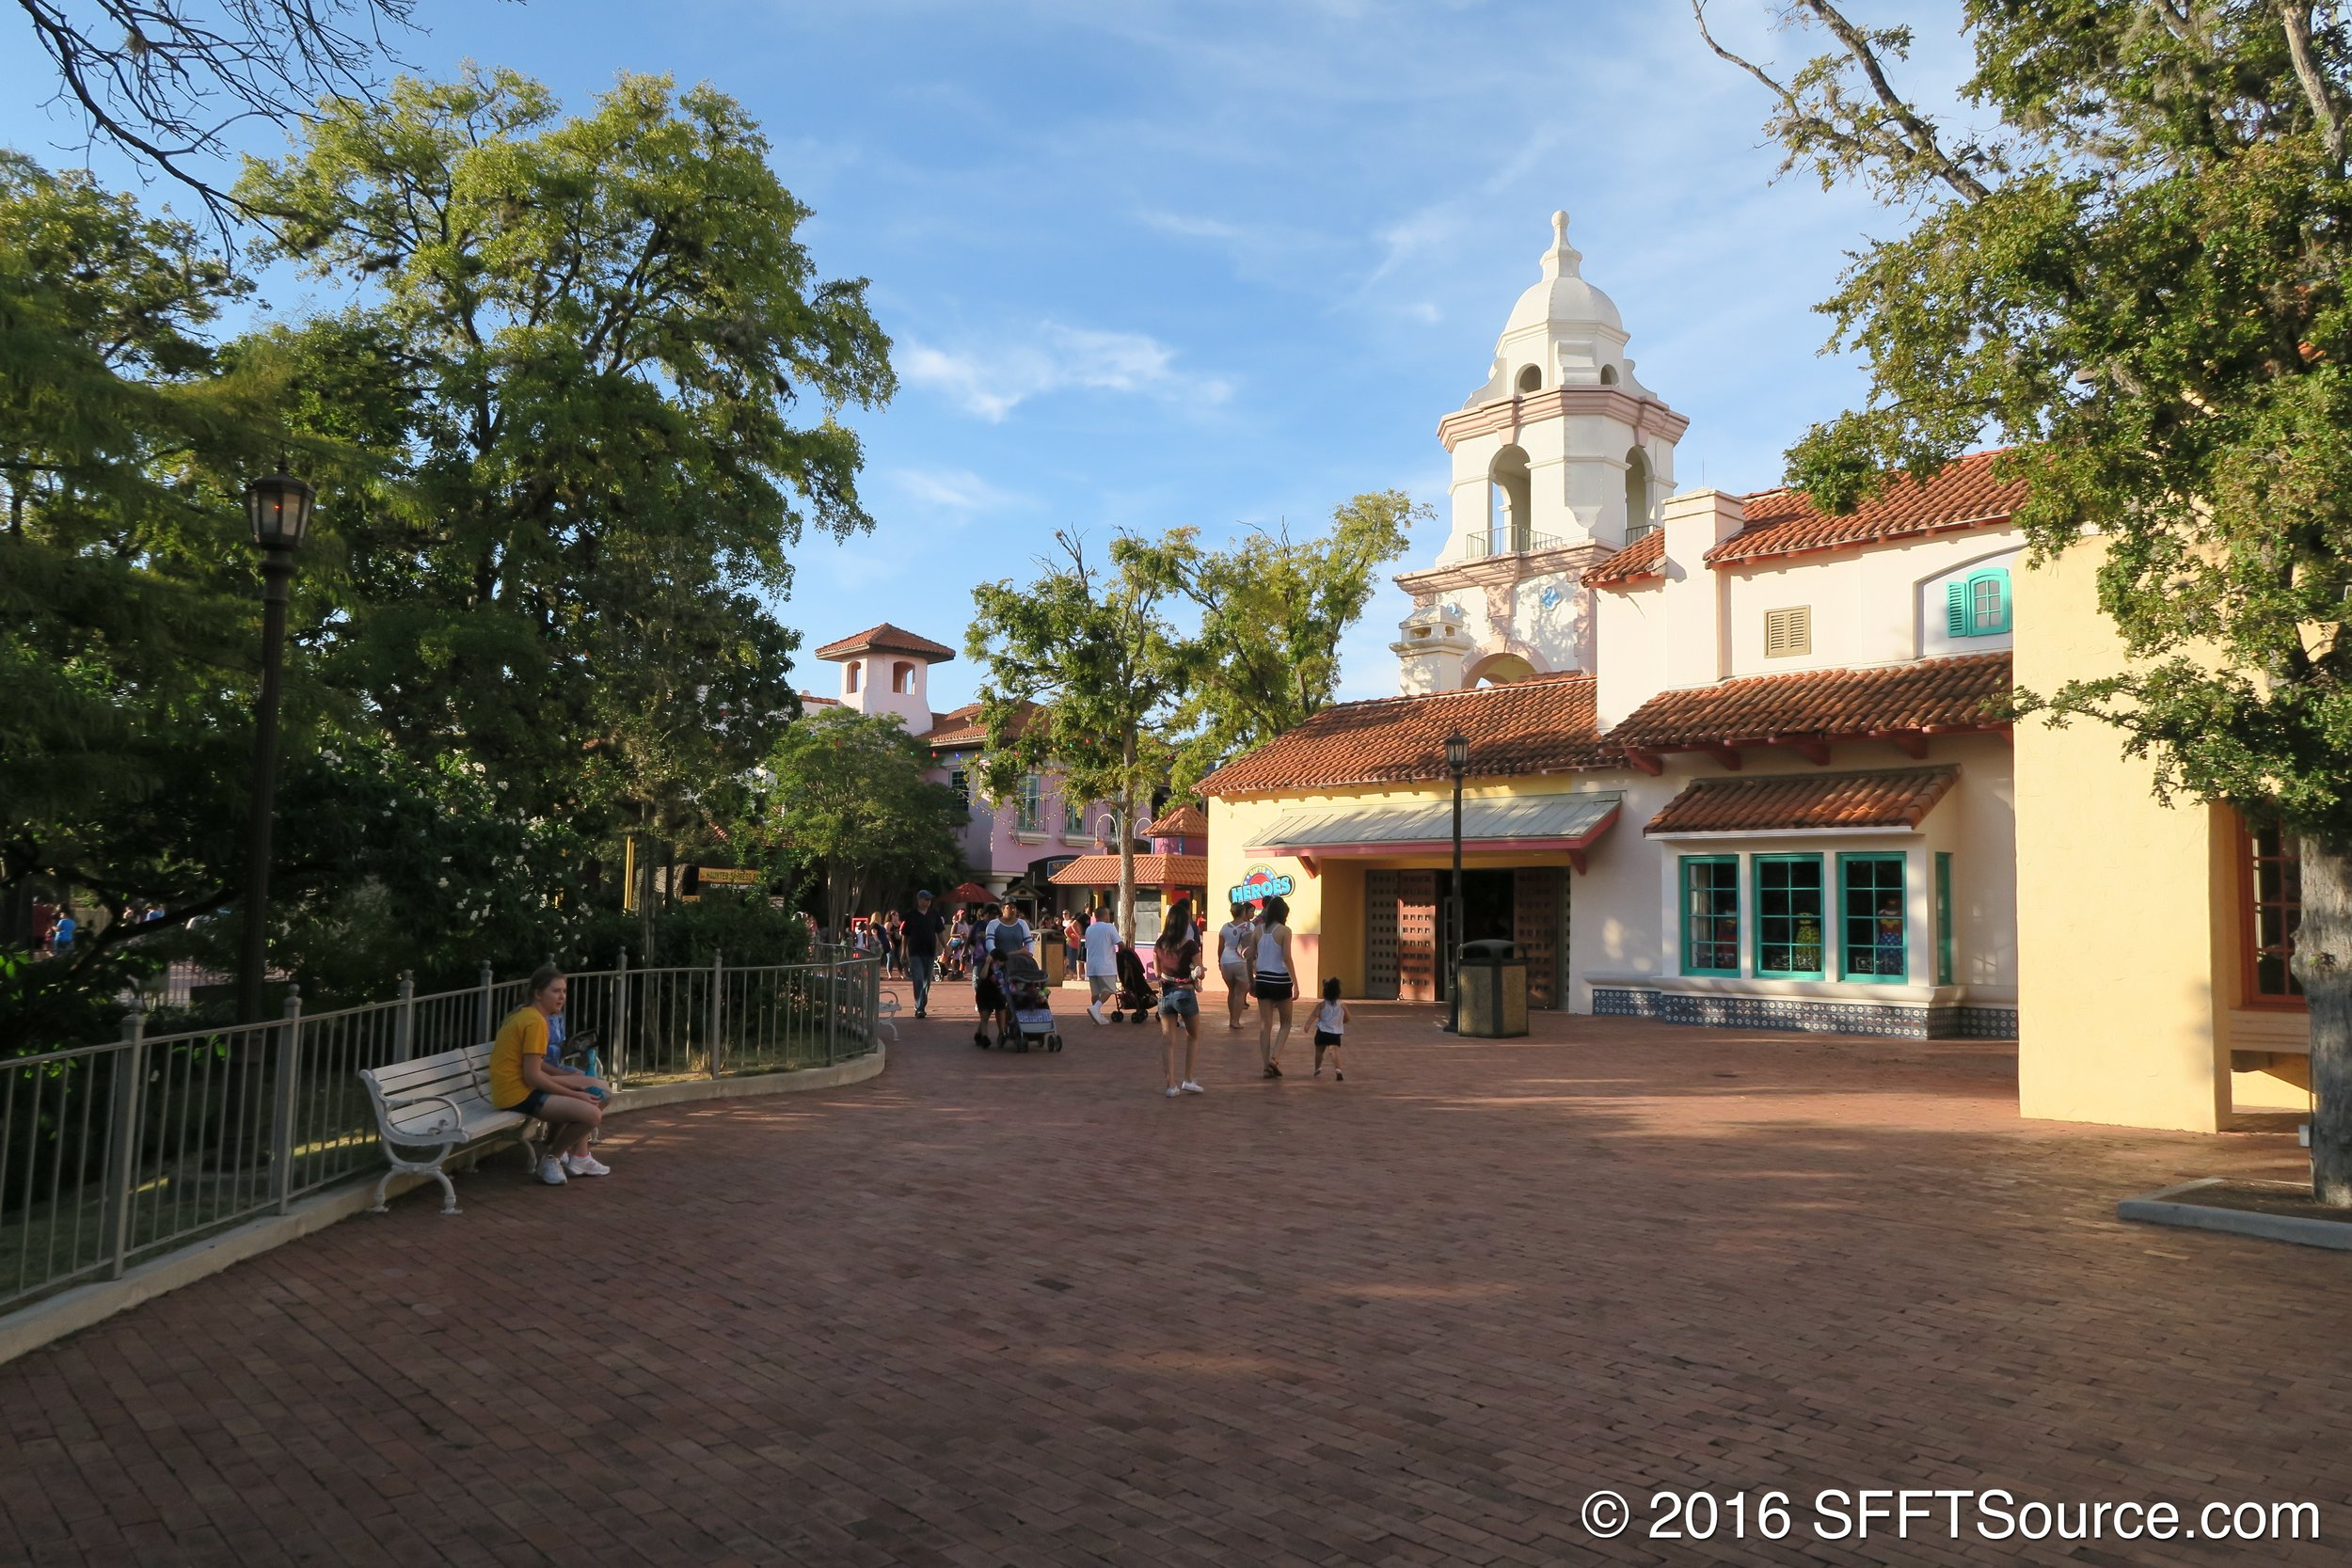 A look at the atmosphere of Los Festivales.